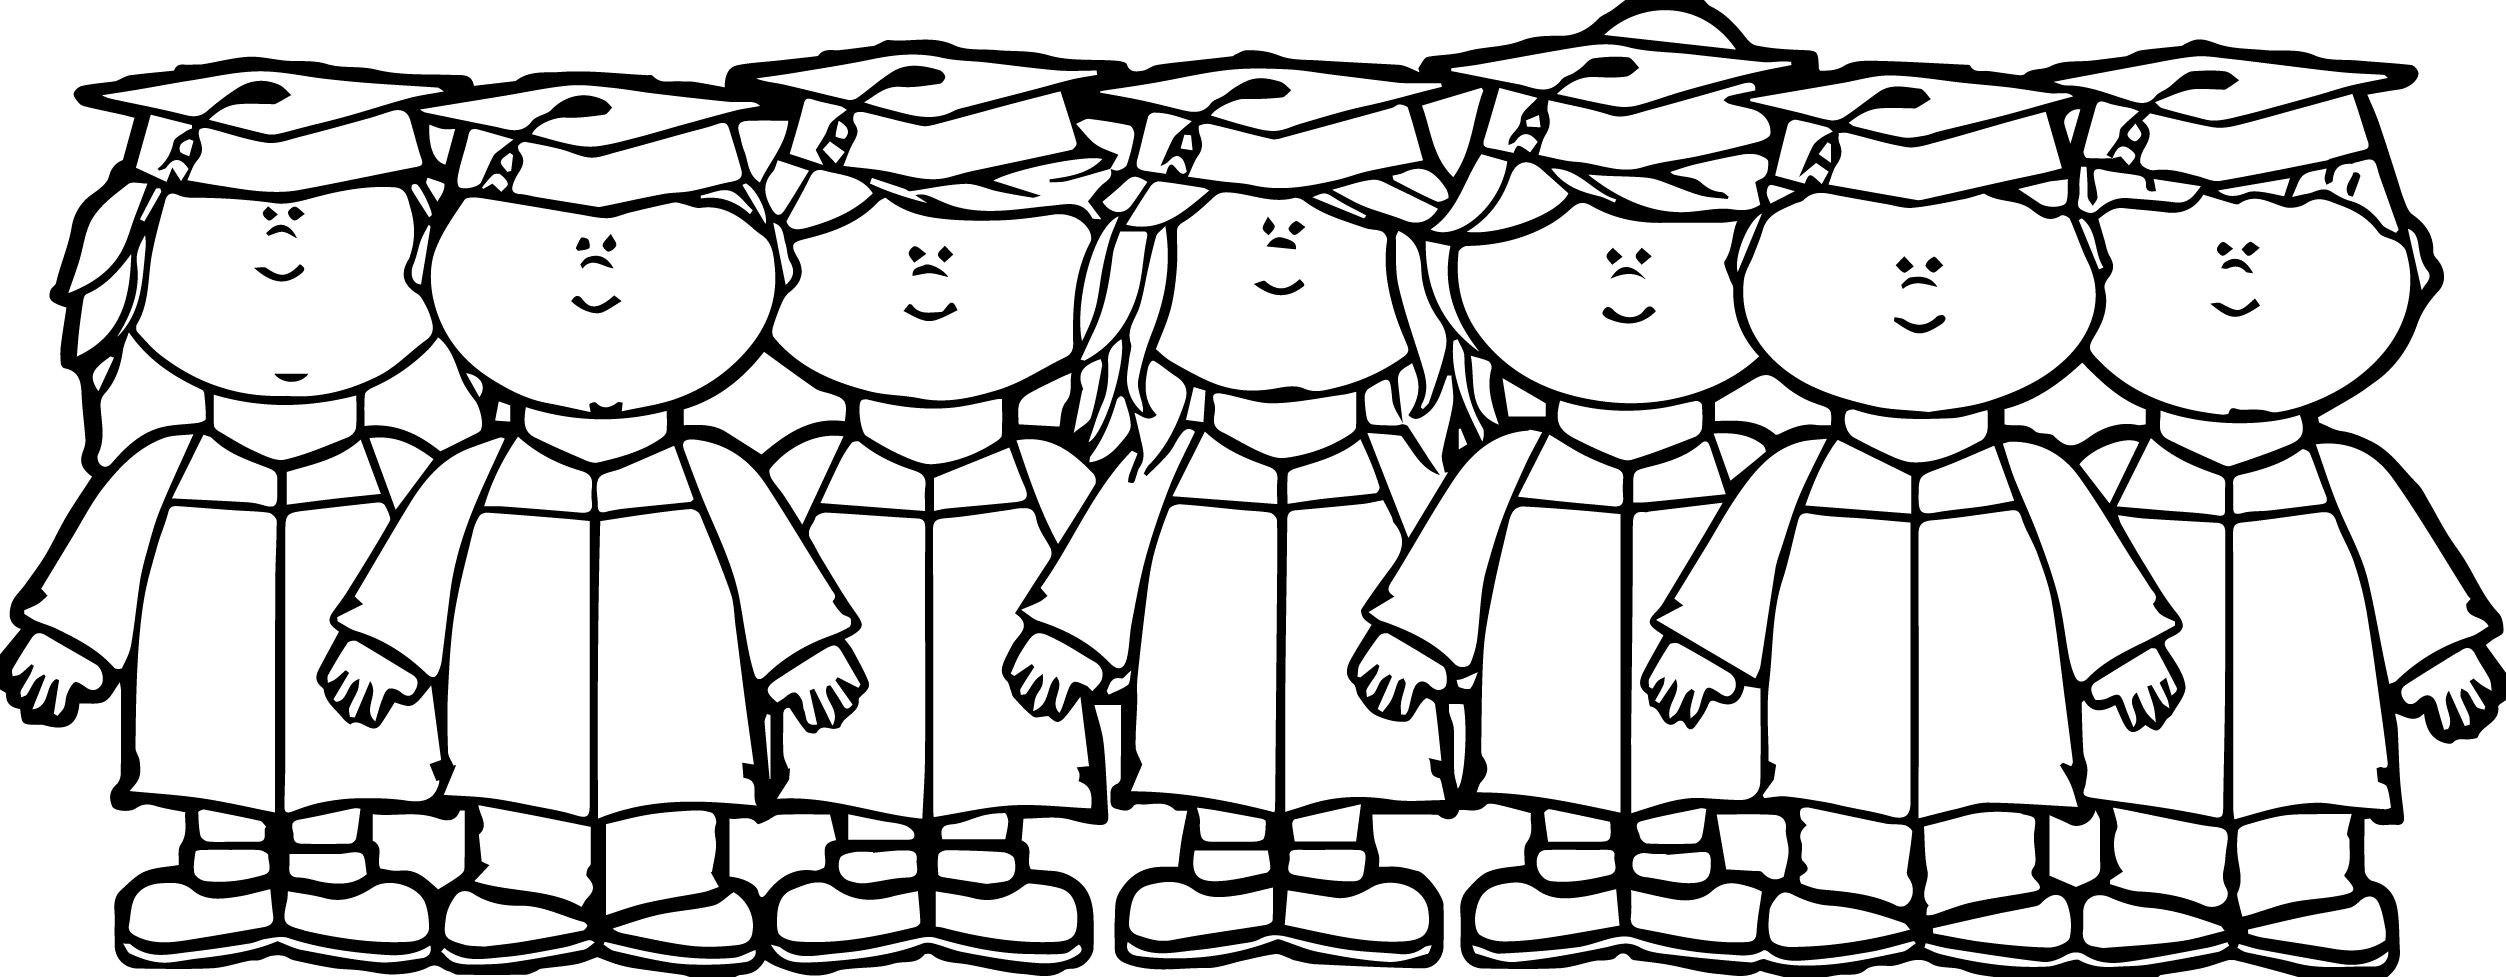 Kids Graduation Clip Art Kids Graduation Image Kids We